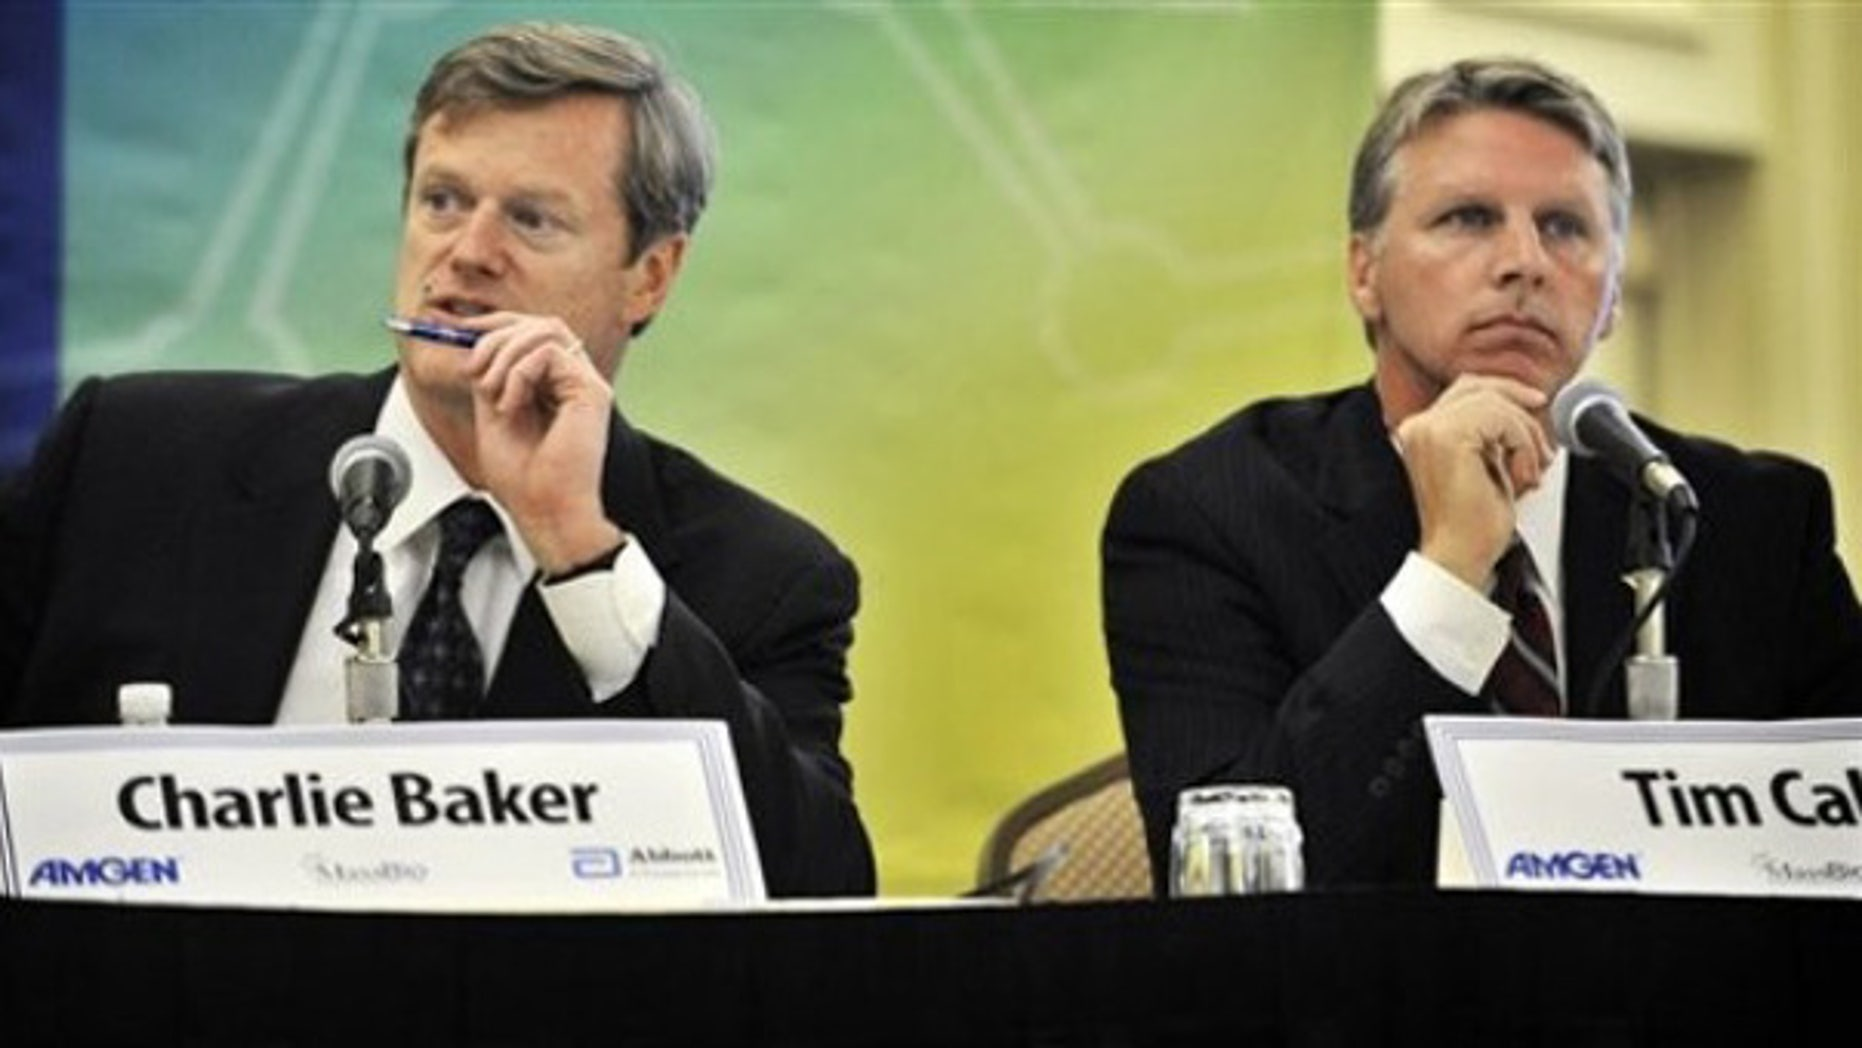 Monday: Gubernatorial candidates Republican Charles Baker and Independent Tim Cahill participate in a candidates' debate In Cambridge, Mass.